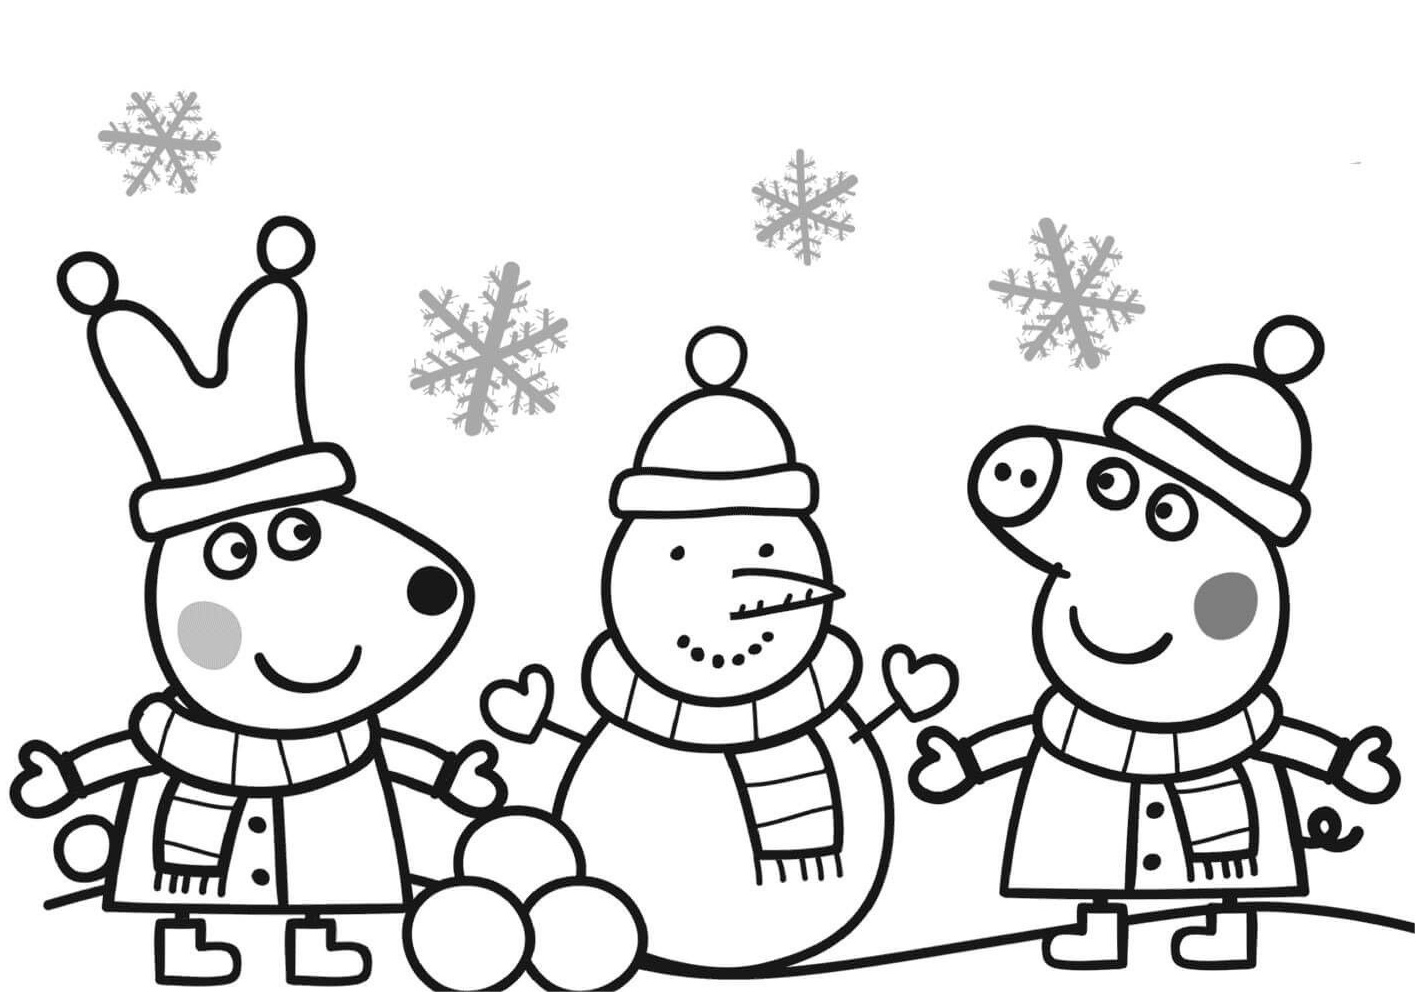 Peppa Pig Coloring Pages for Kids ▻ Peppa Pig Coloring Games ... | 1000x1420